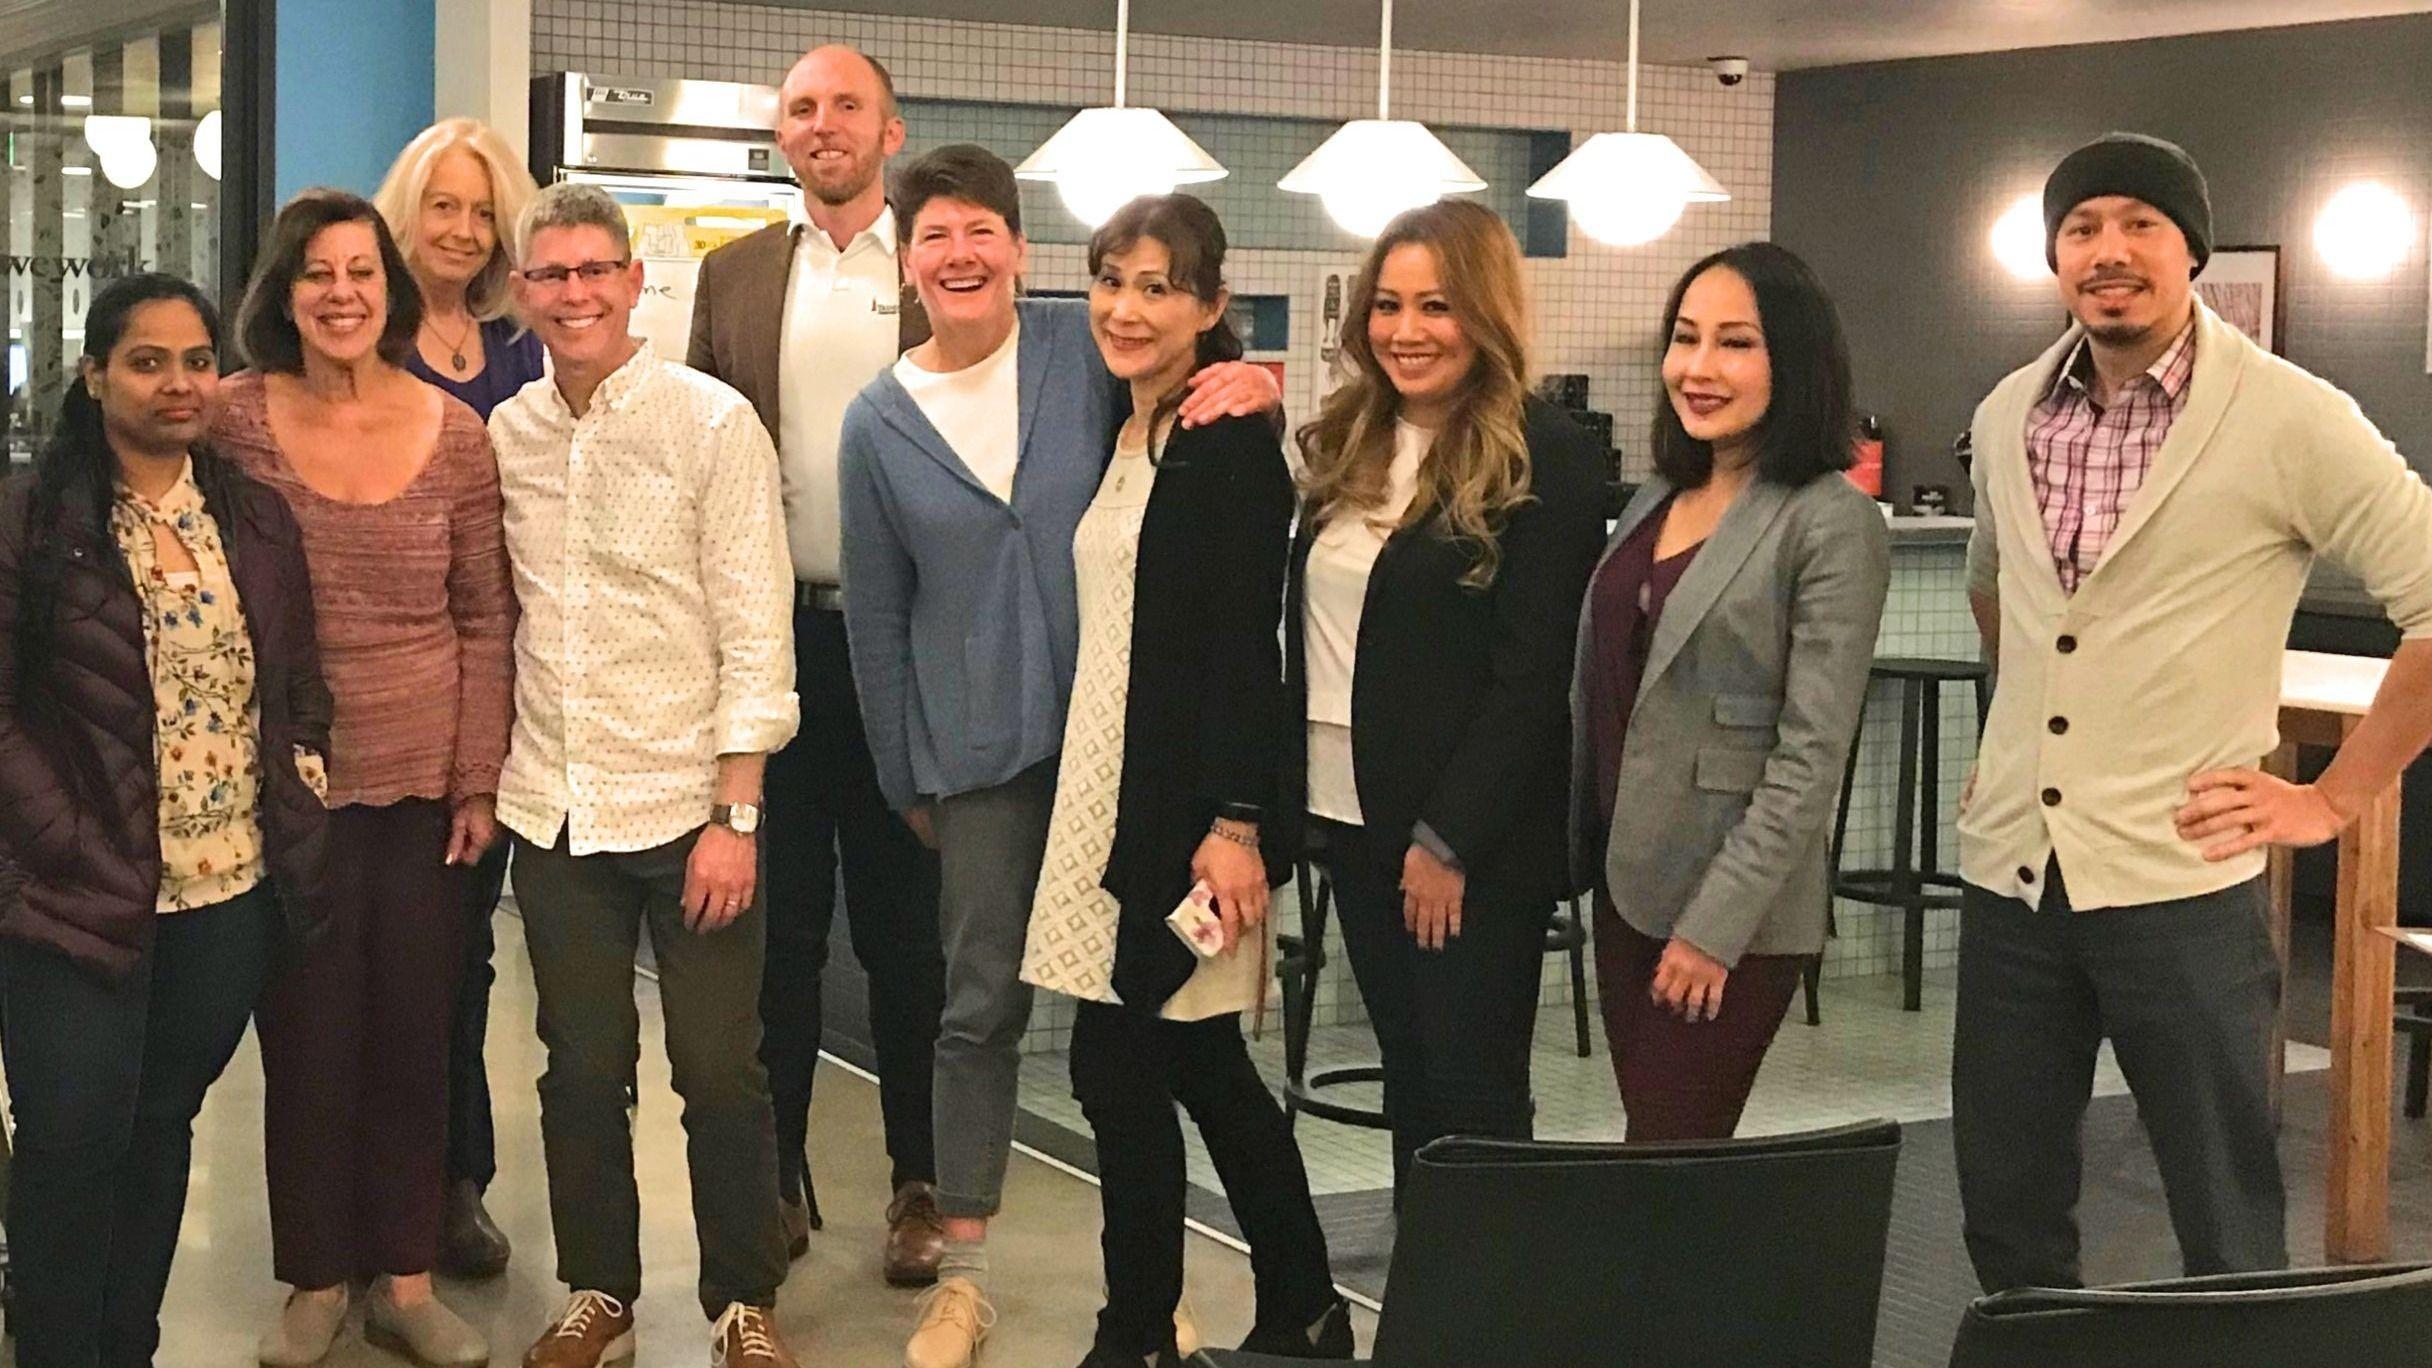 San Francisco Personal Empowerment Meetup